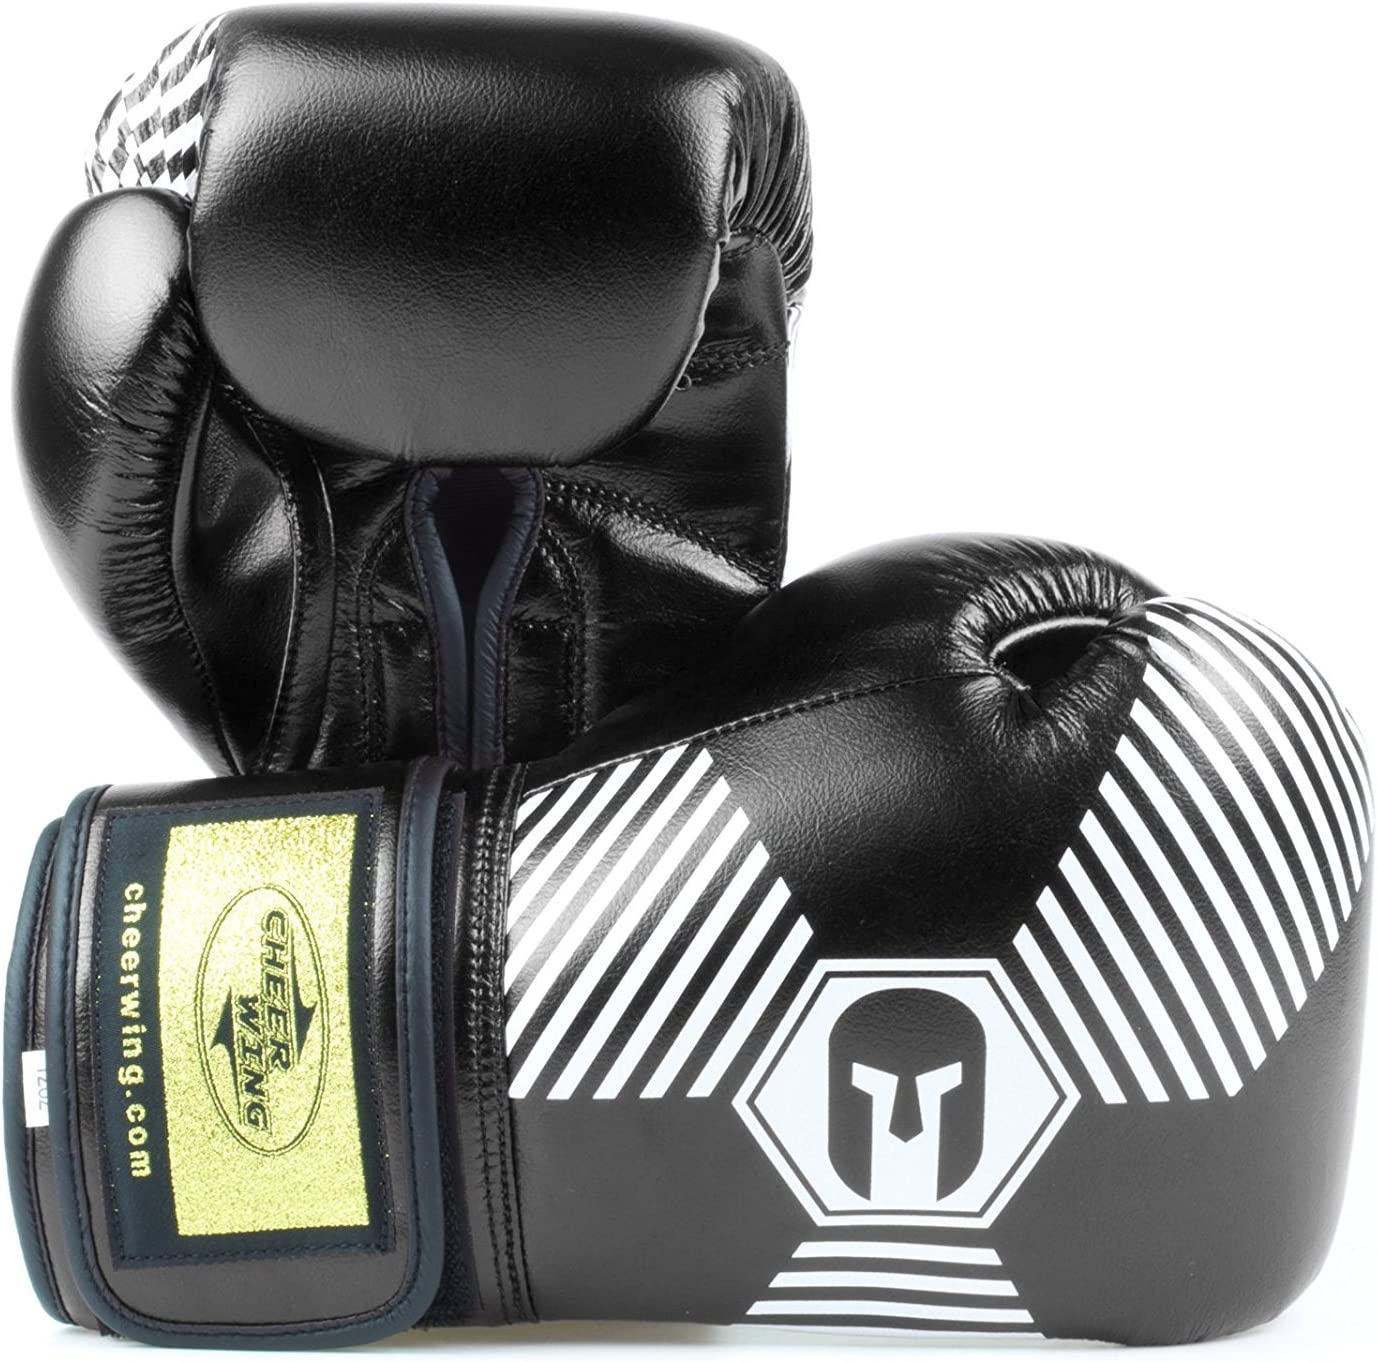 Cheerwing Time sale Pro Boxing Gloves for Thai Sparring Muay Kickboxing Max 74% OFF Fi